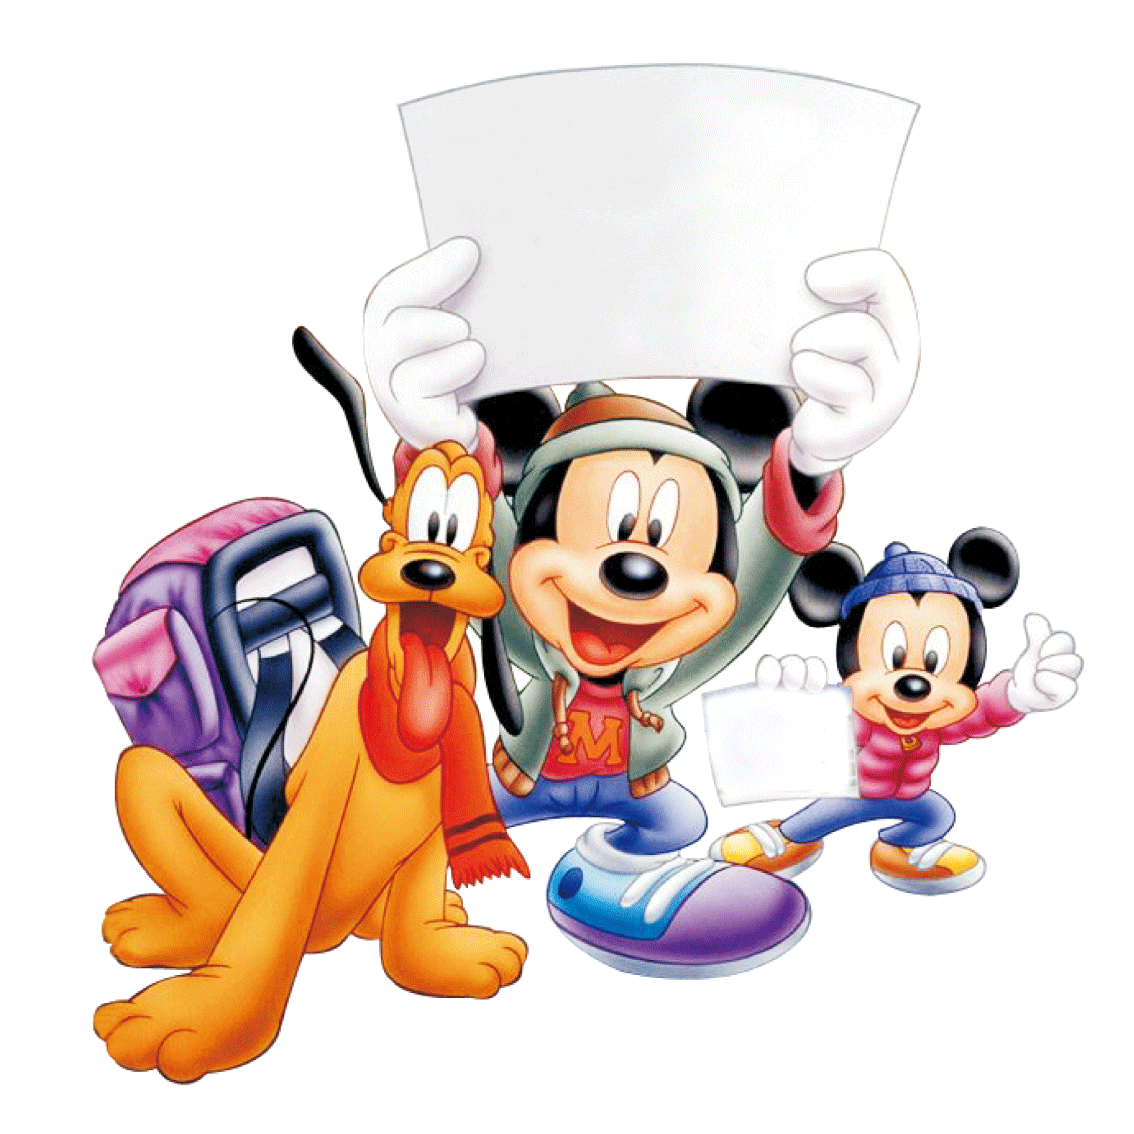 Wallpaper mickey png. Mouse minnie cartoon the